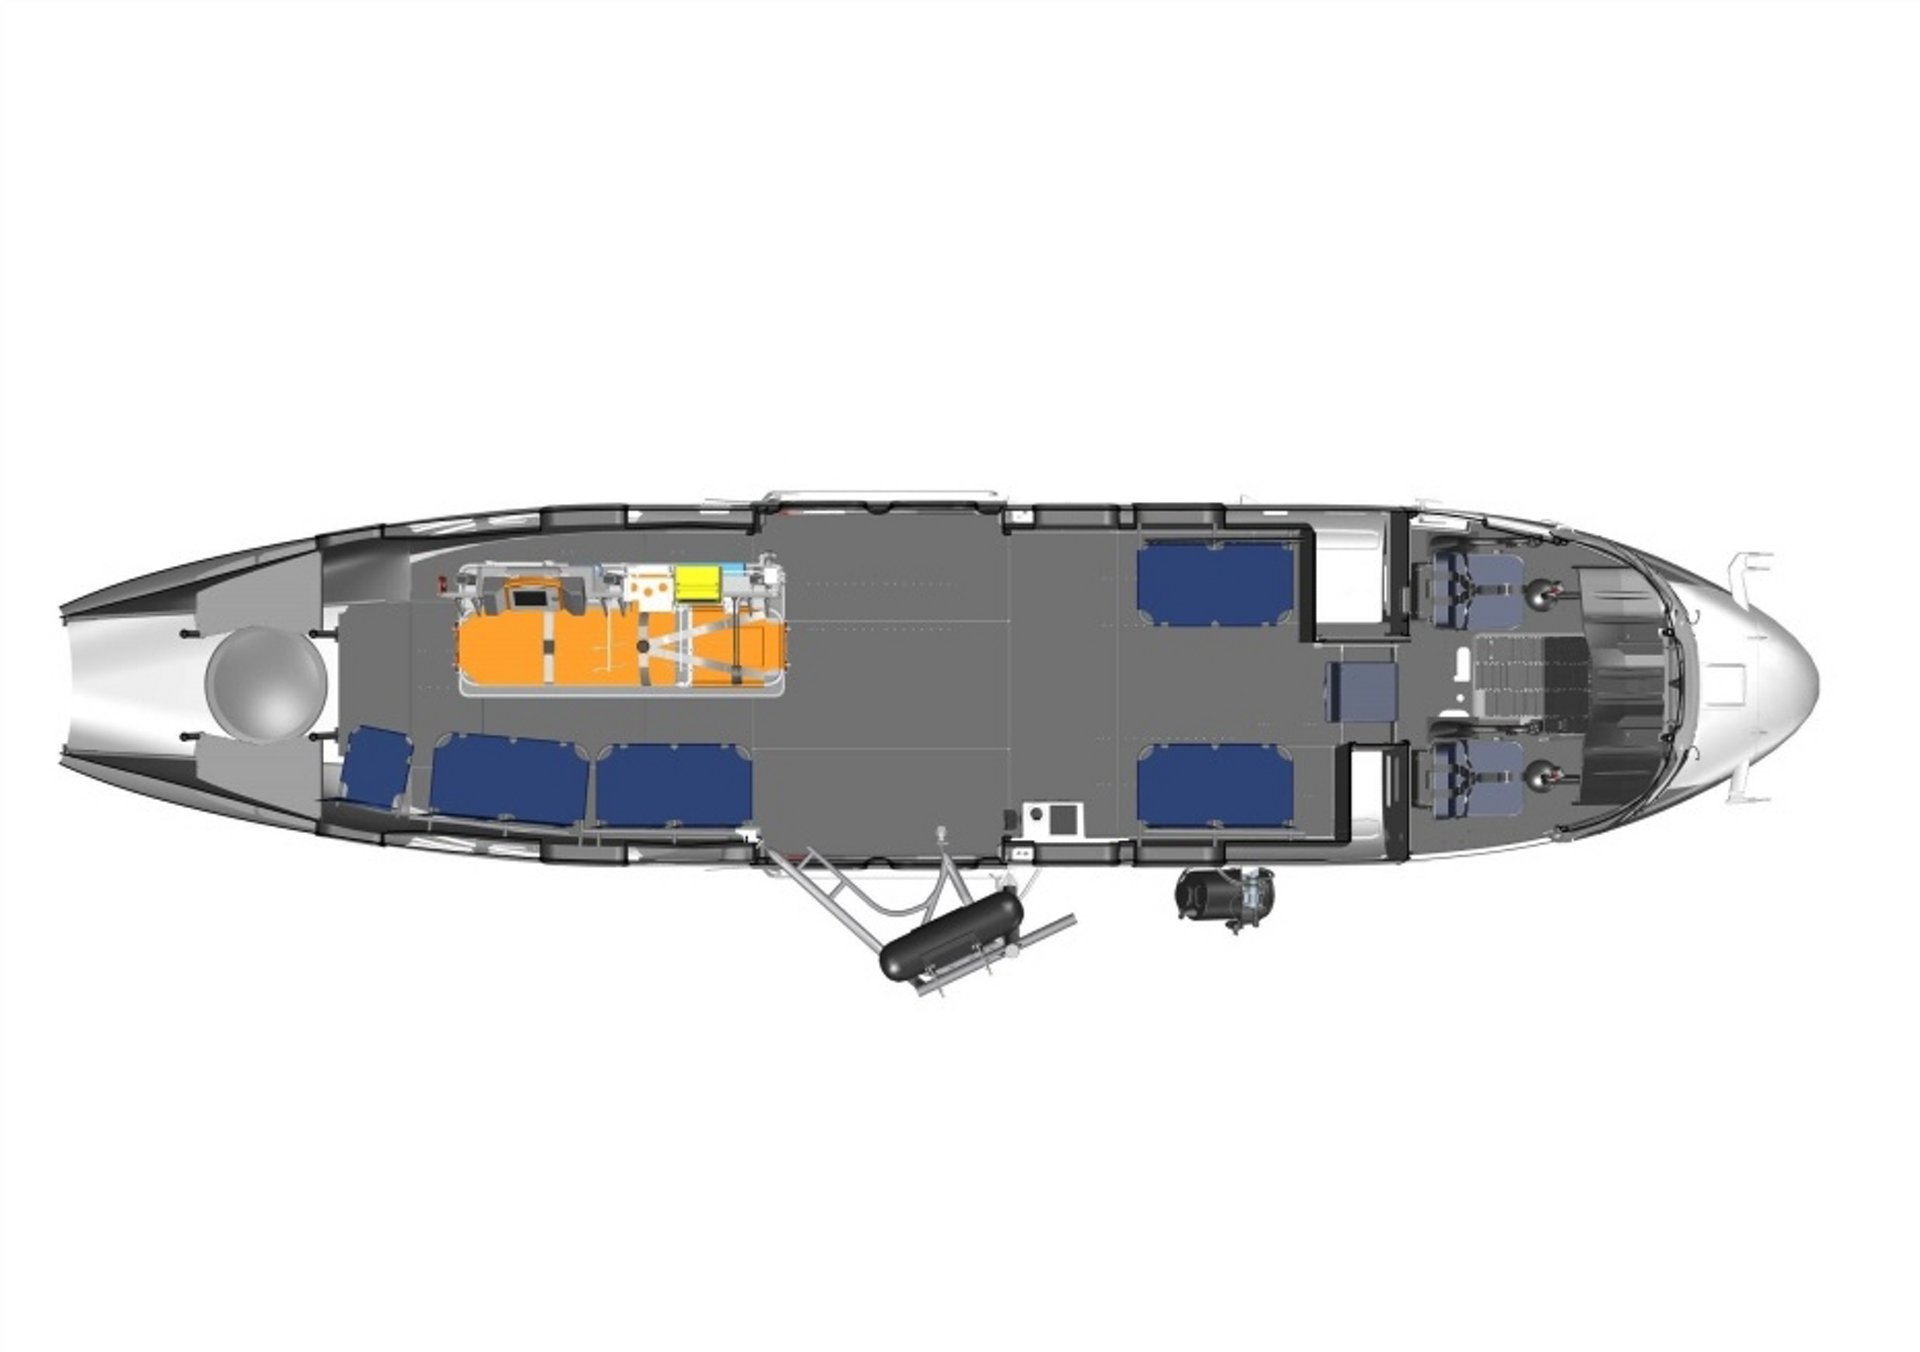 Diagram of an Airbus H215 helicopter cabin configured for search and rescue and/or medical evacuation (Medevac) operations.